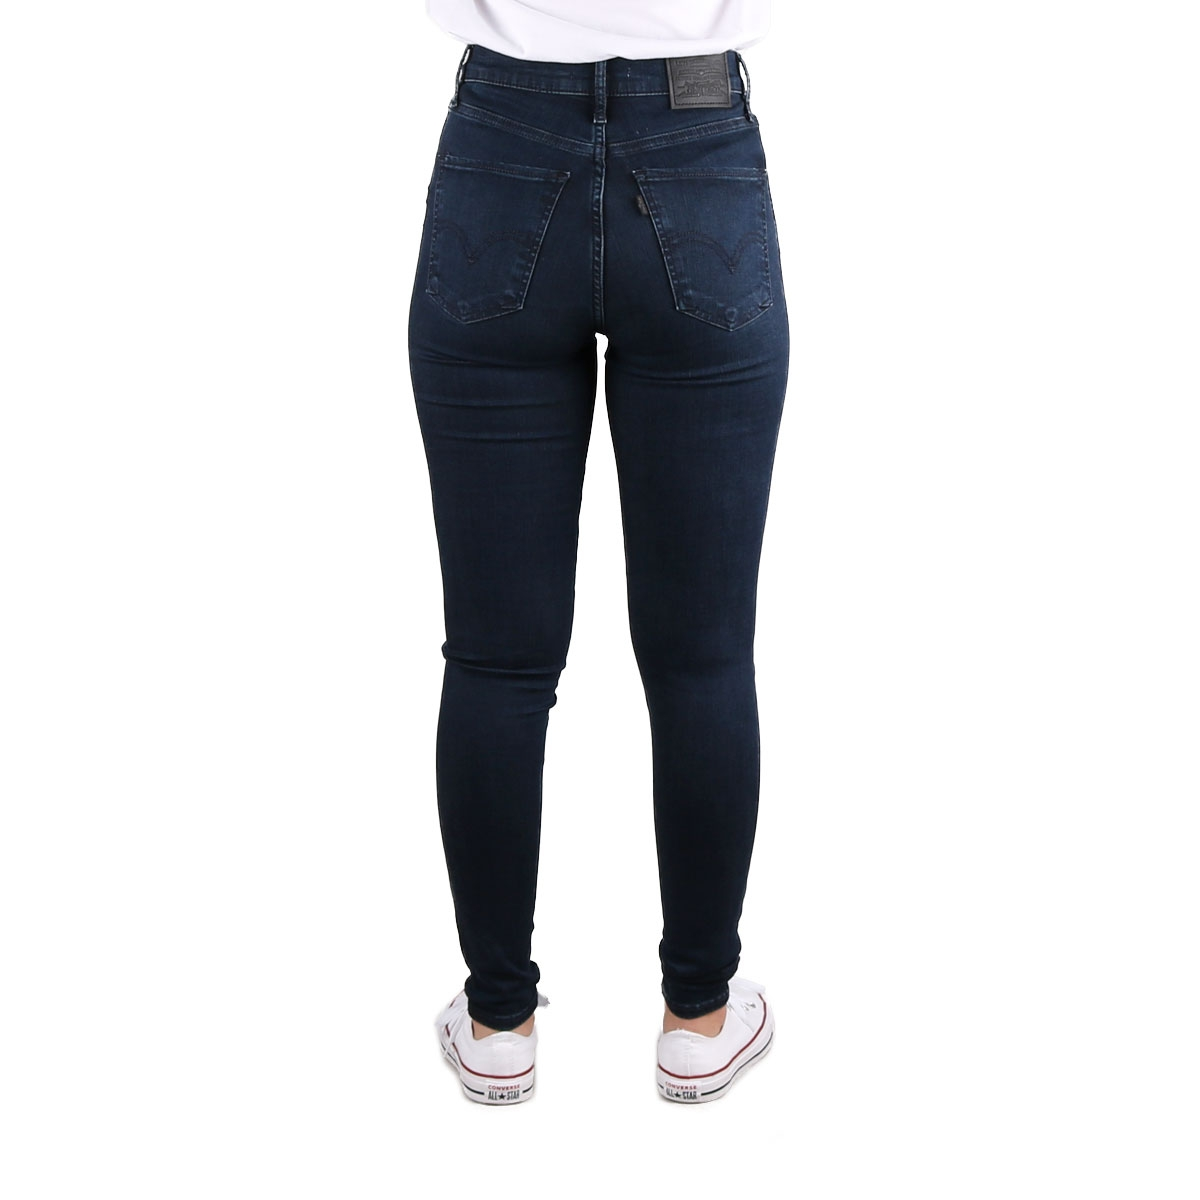 Levis Pantalón Mile High Super Skinny Azul Oscuro Mujer